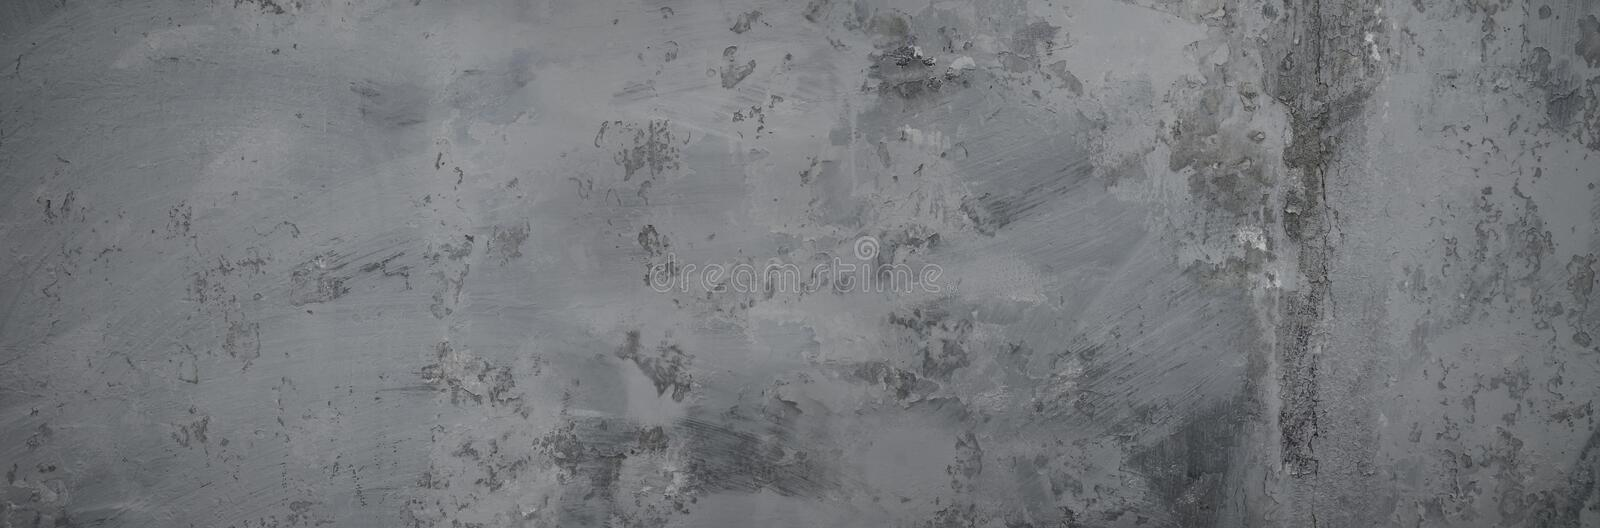 Neutral gray background. Grunge texture of concrete wall royalty free stock photos